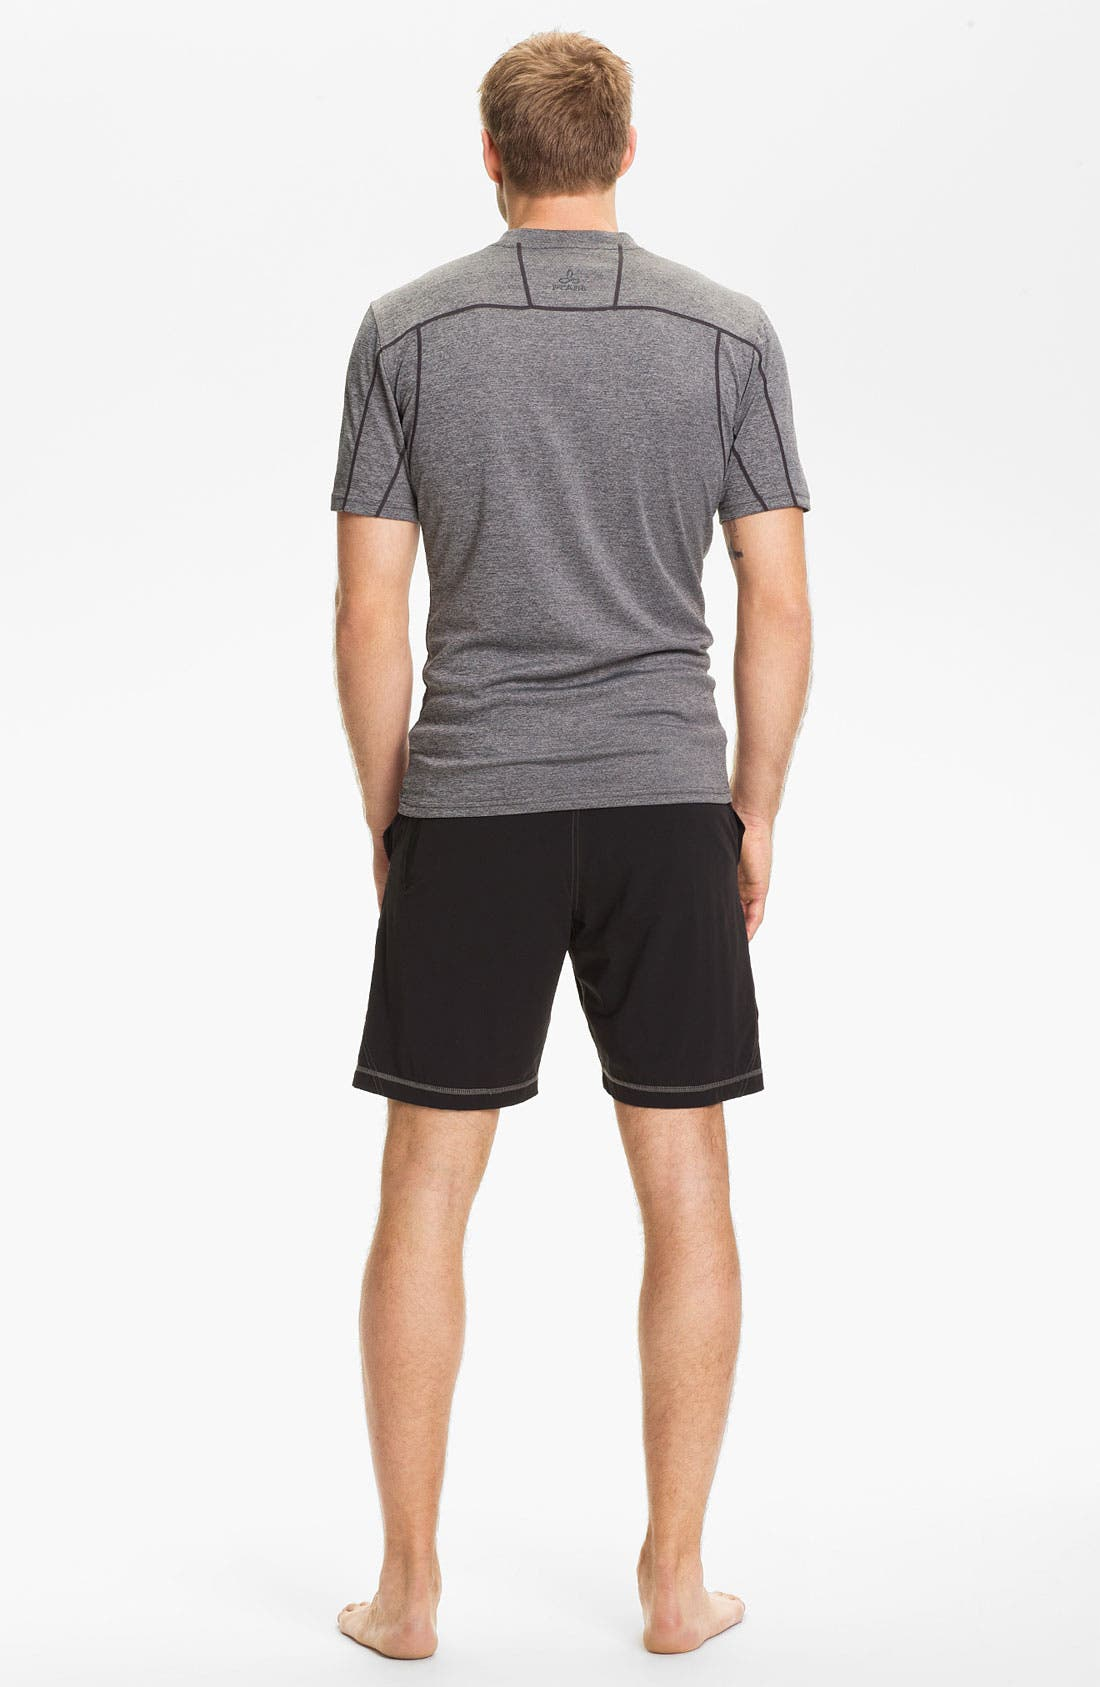 Alternate Image 3  - prAna T-Shirt & Shorts